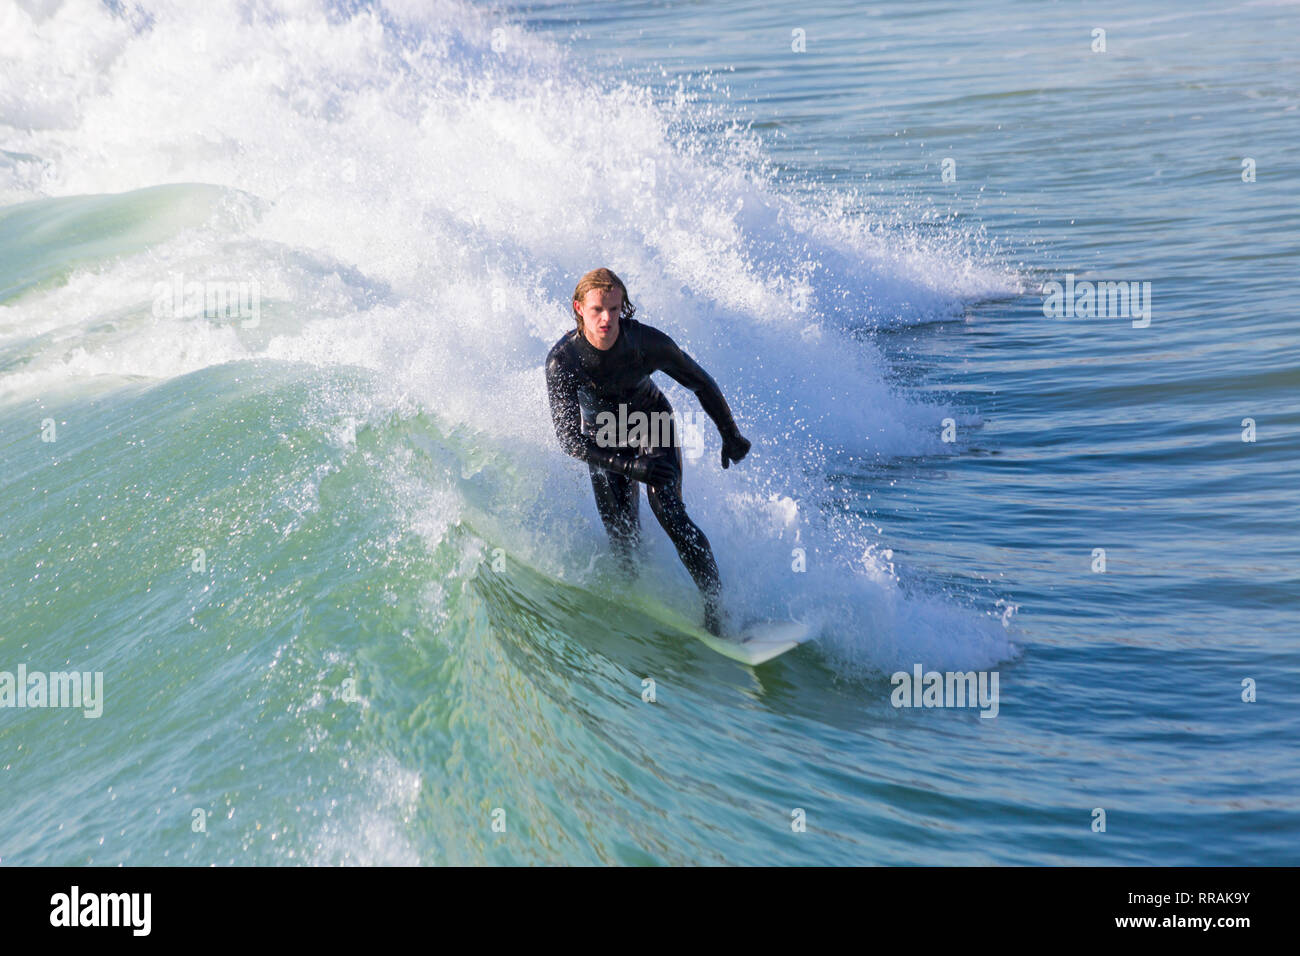 Bournemouth, Dorset, UK. 25th Feb, 2019. UK weather: big waves and plenty of surf create ideal surfing conditions for surfers at Bournemouth beach on a lovely warm sunny day expected to be the hottest day of the year and hottest February day ever. Surfer riding the wave. Credit: Carolyn Jenkins/Alamy Live News - Stock Image